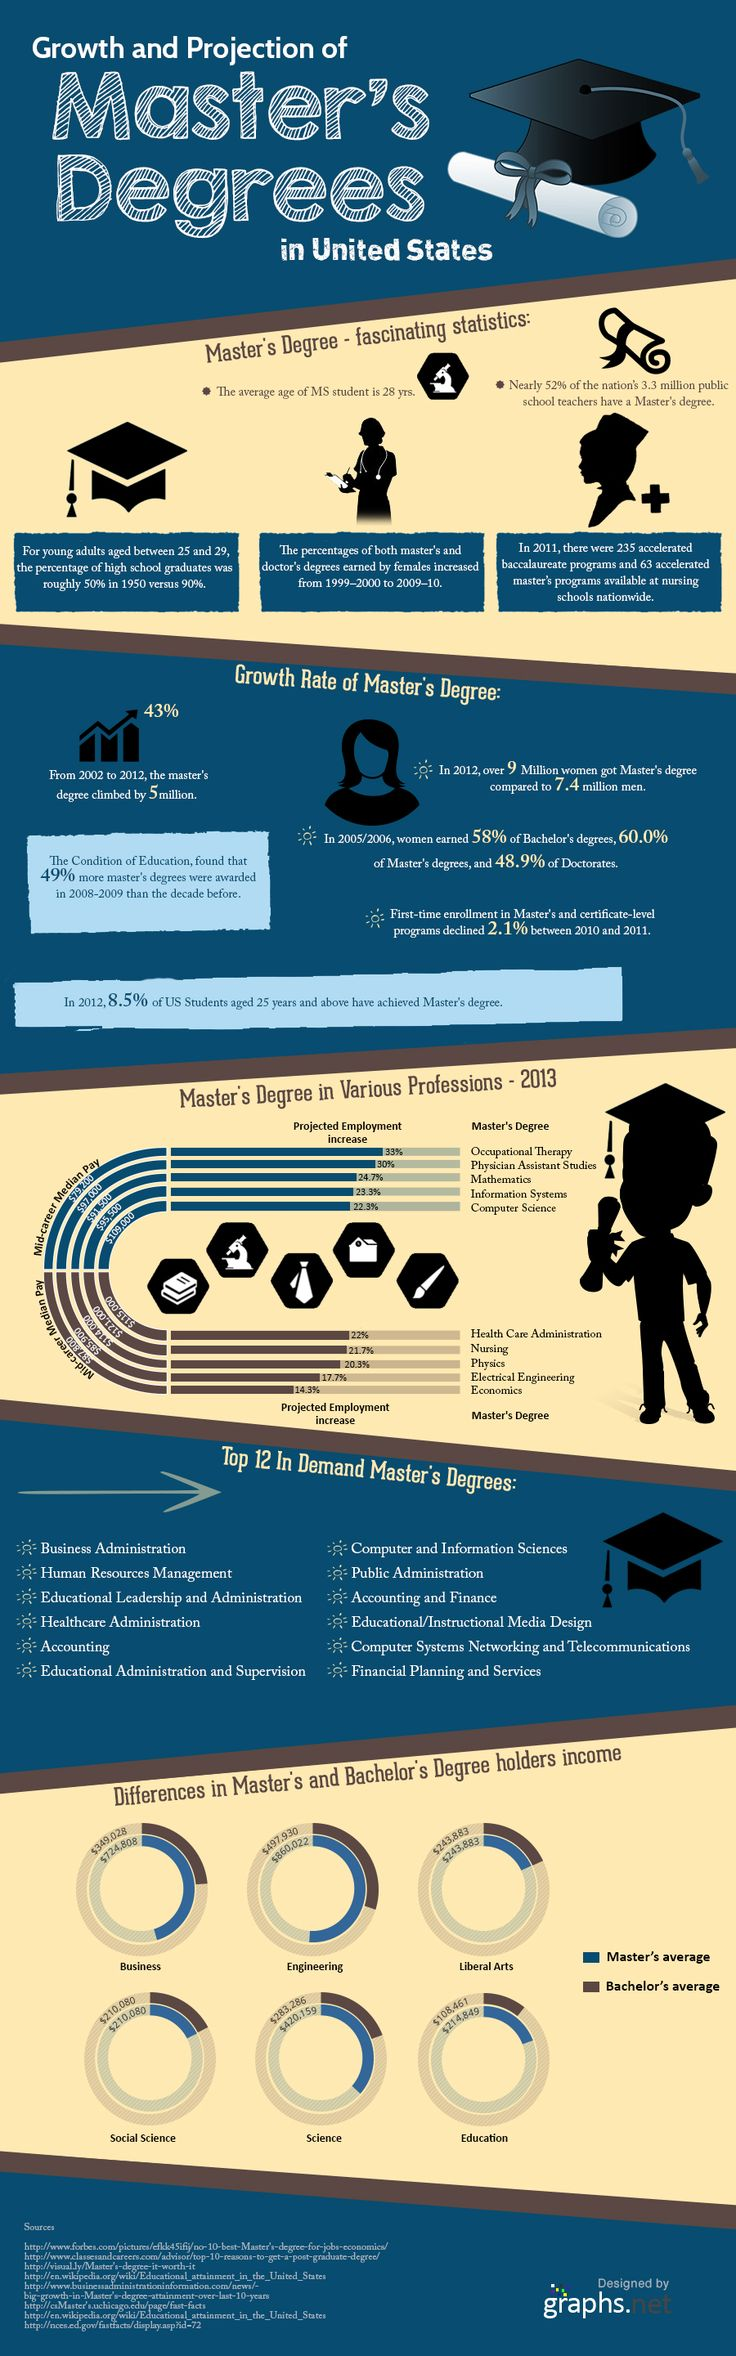 It is shown in the #infographic that there has been huge increase in the #Master's degree from 2002 to 2012. In the year 2012, nearly 7 million women in #America have acquired a Master's degree while only 7.4 million men have obtained Master's degree in their respective career fields.